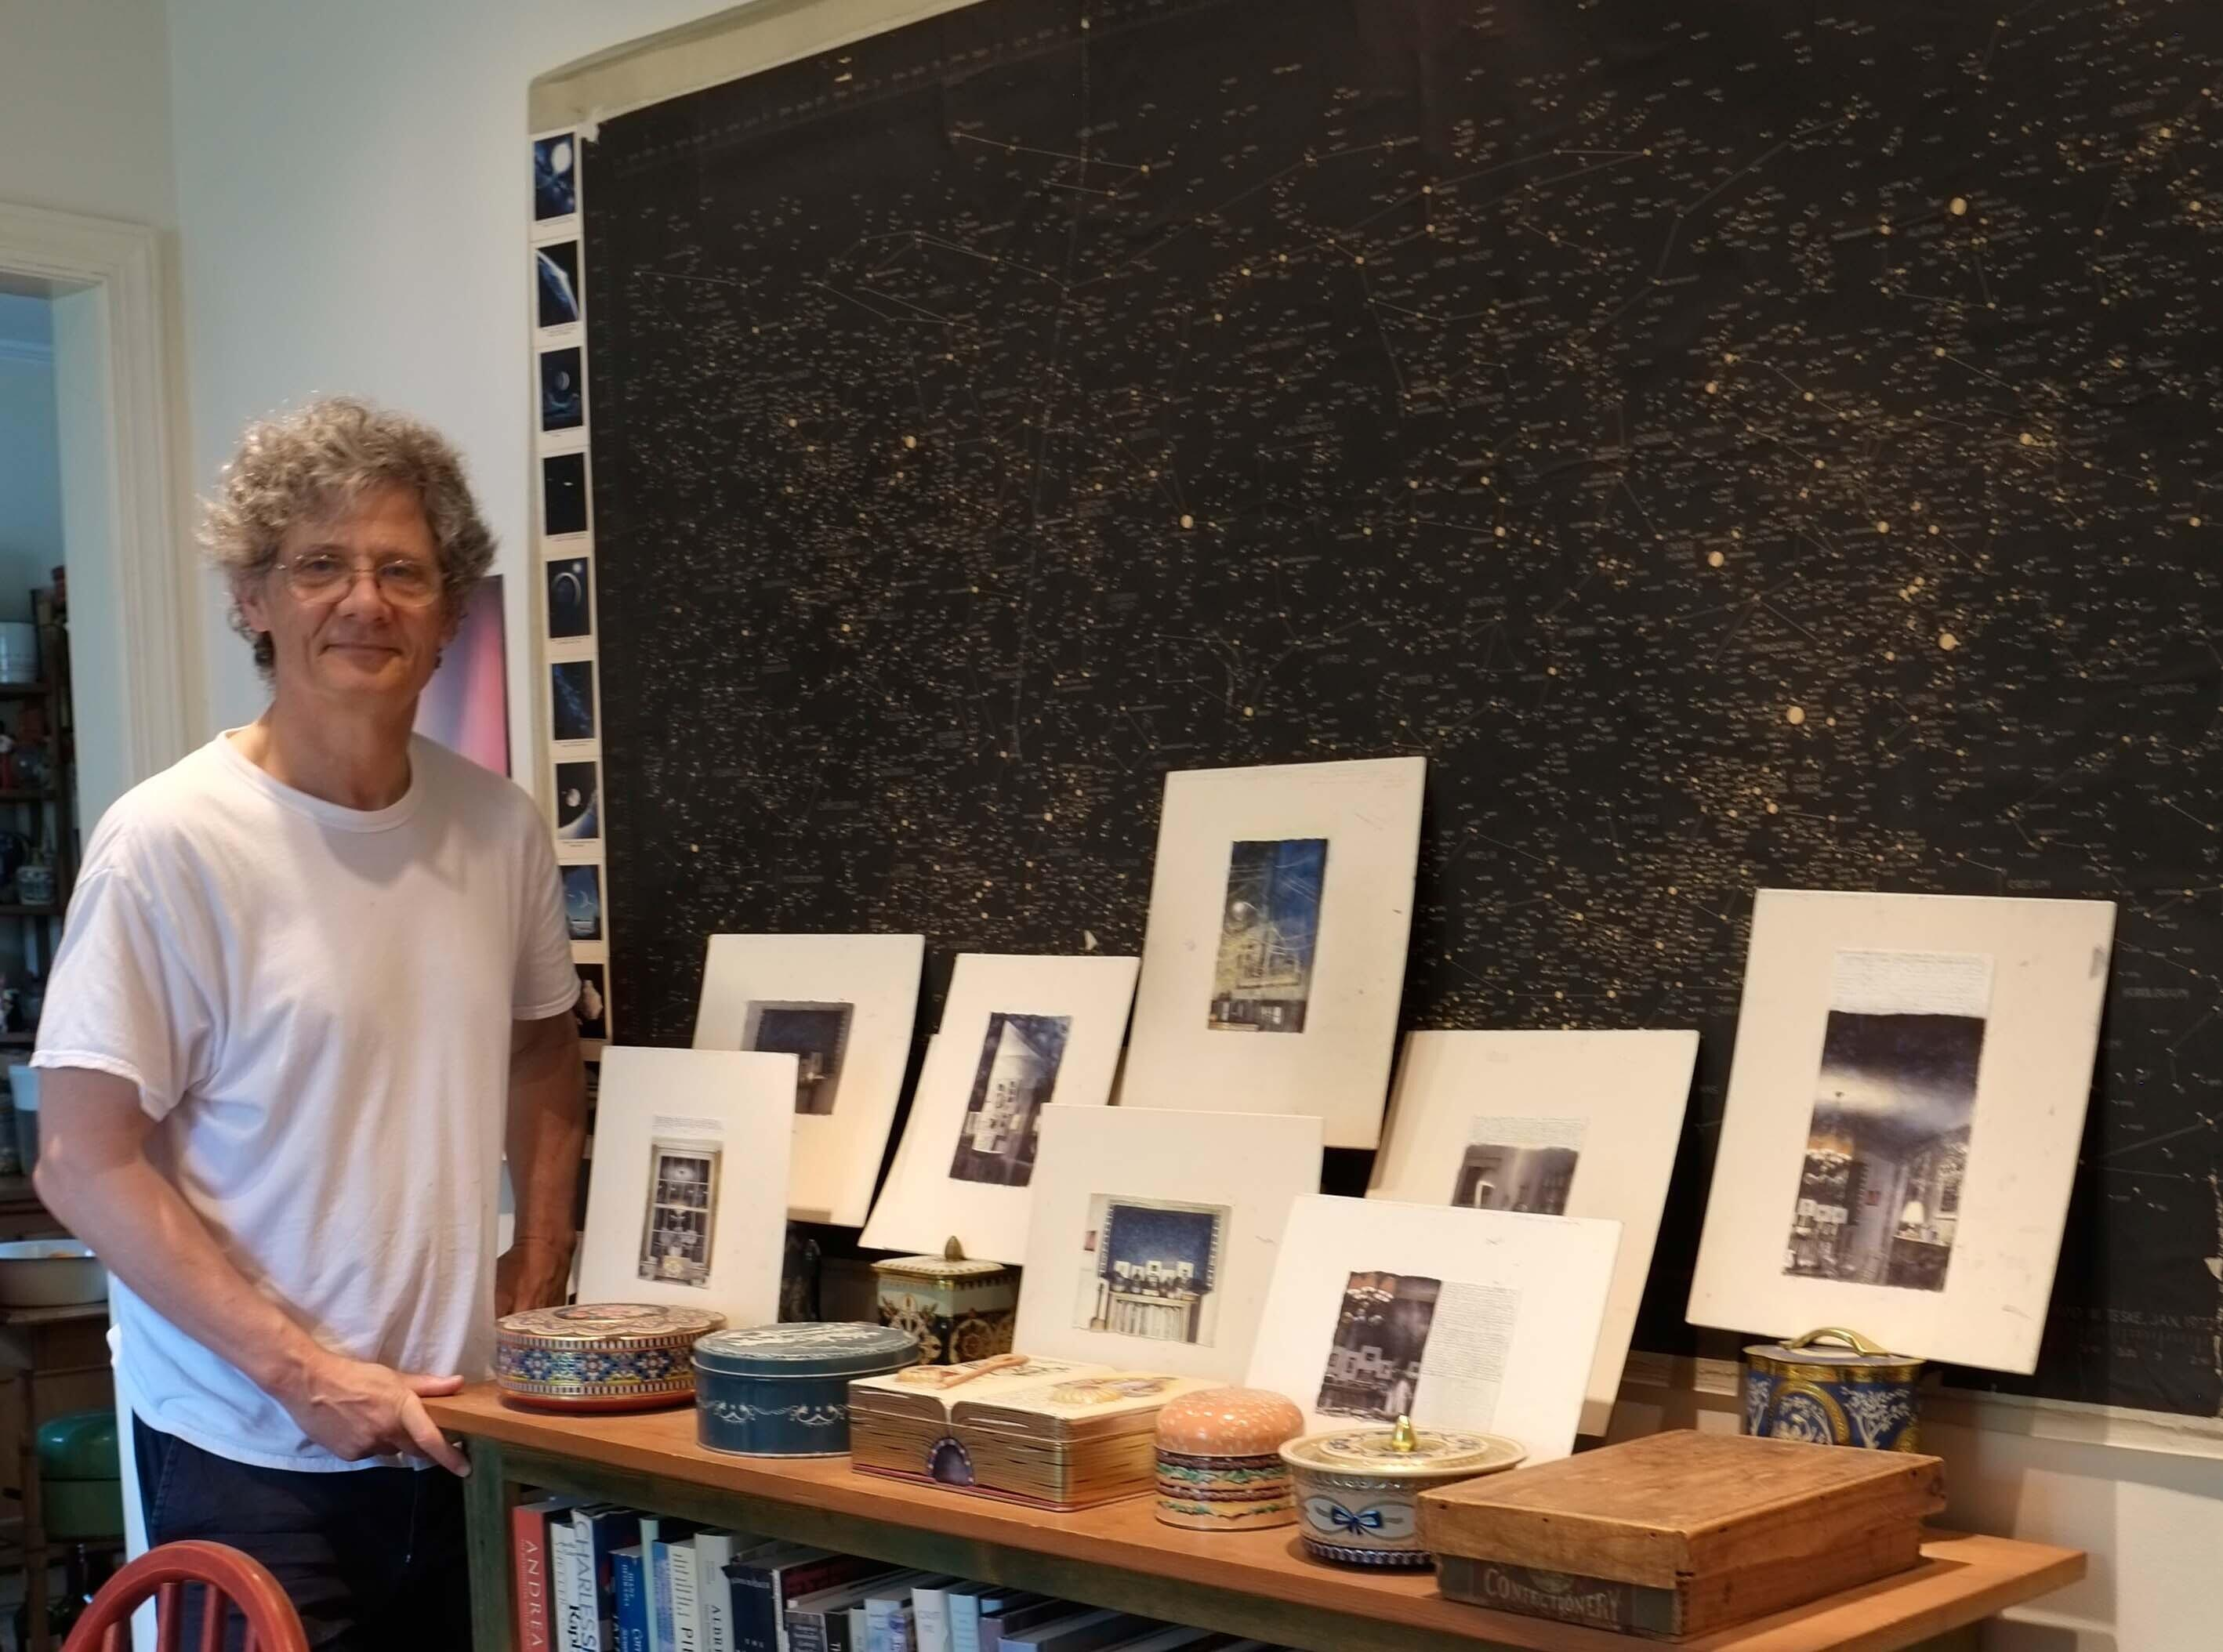 Photograph of Charles Ritchie with Star Map and Drawings, 2017. See Instagram Artist Feature @Jason Haam. image